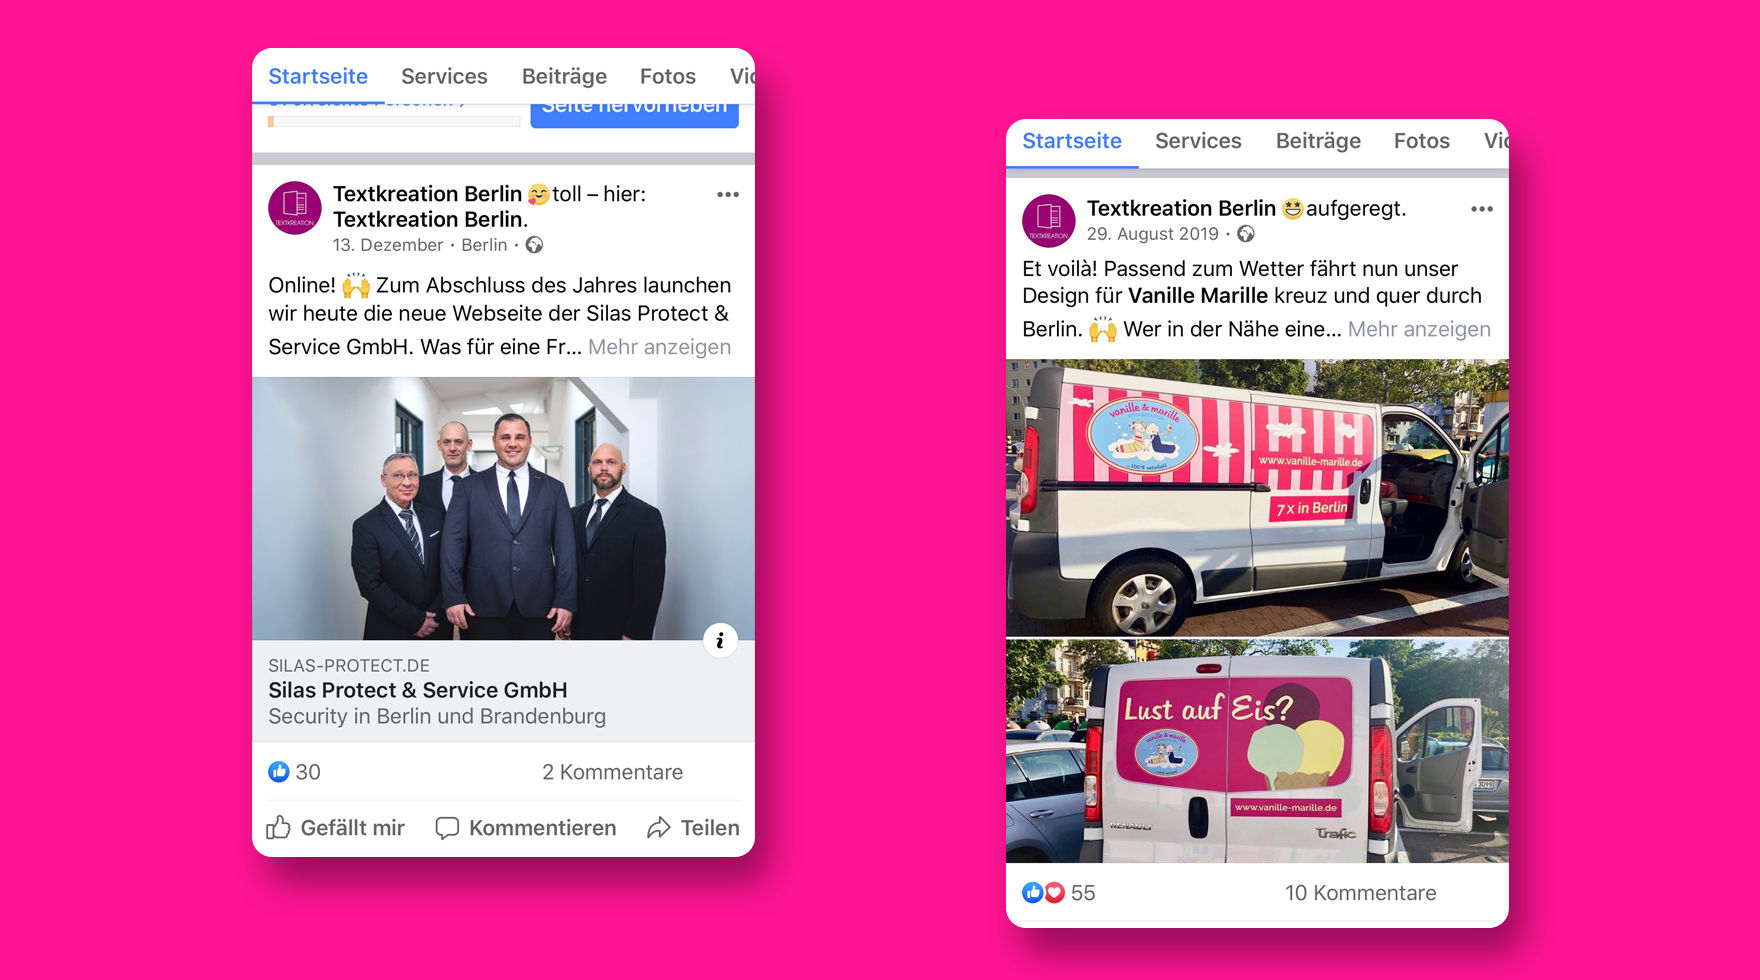 facebook-textkreation-berlin-agentur-social-media